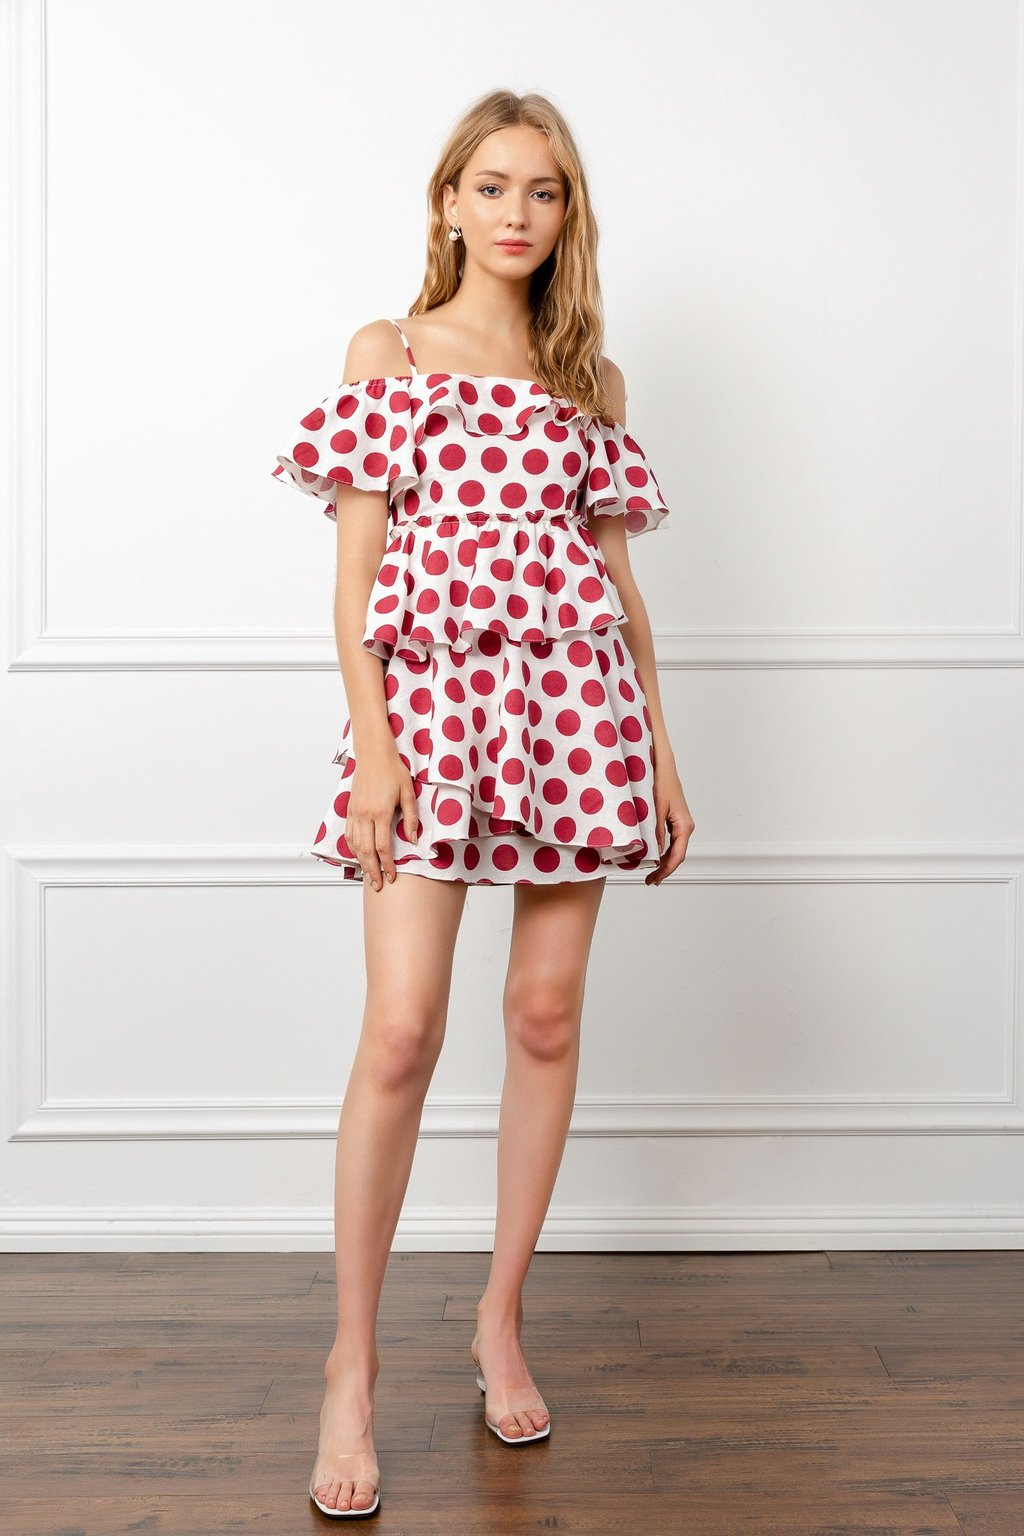 Connect Polka Dot Dress by J.ING LA Women's Fashion